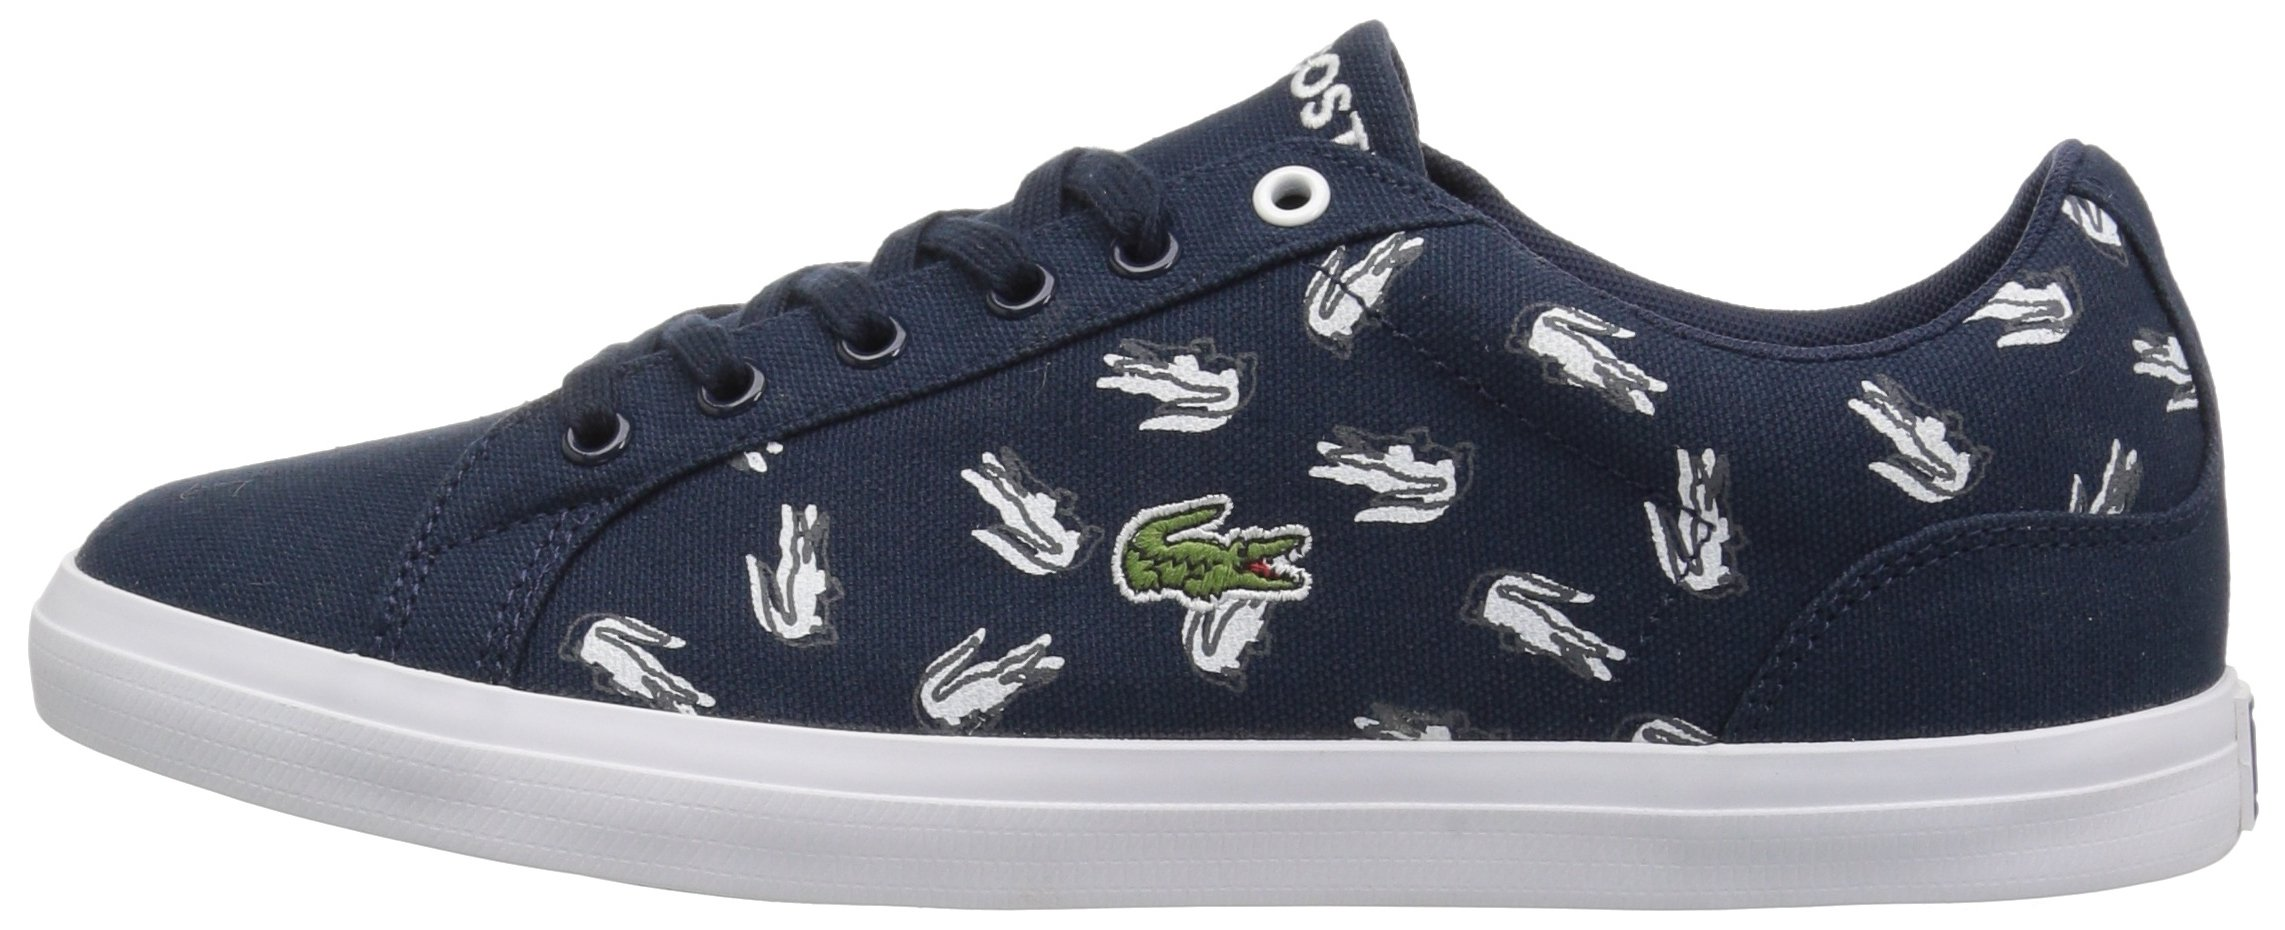 Lacoste Kids' Lerond Sneakers,Navy/White cotton canvas,5 M US Big Kid by Lacoste (Image #5)